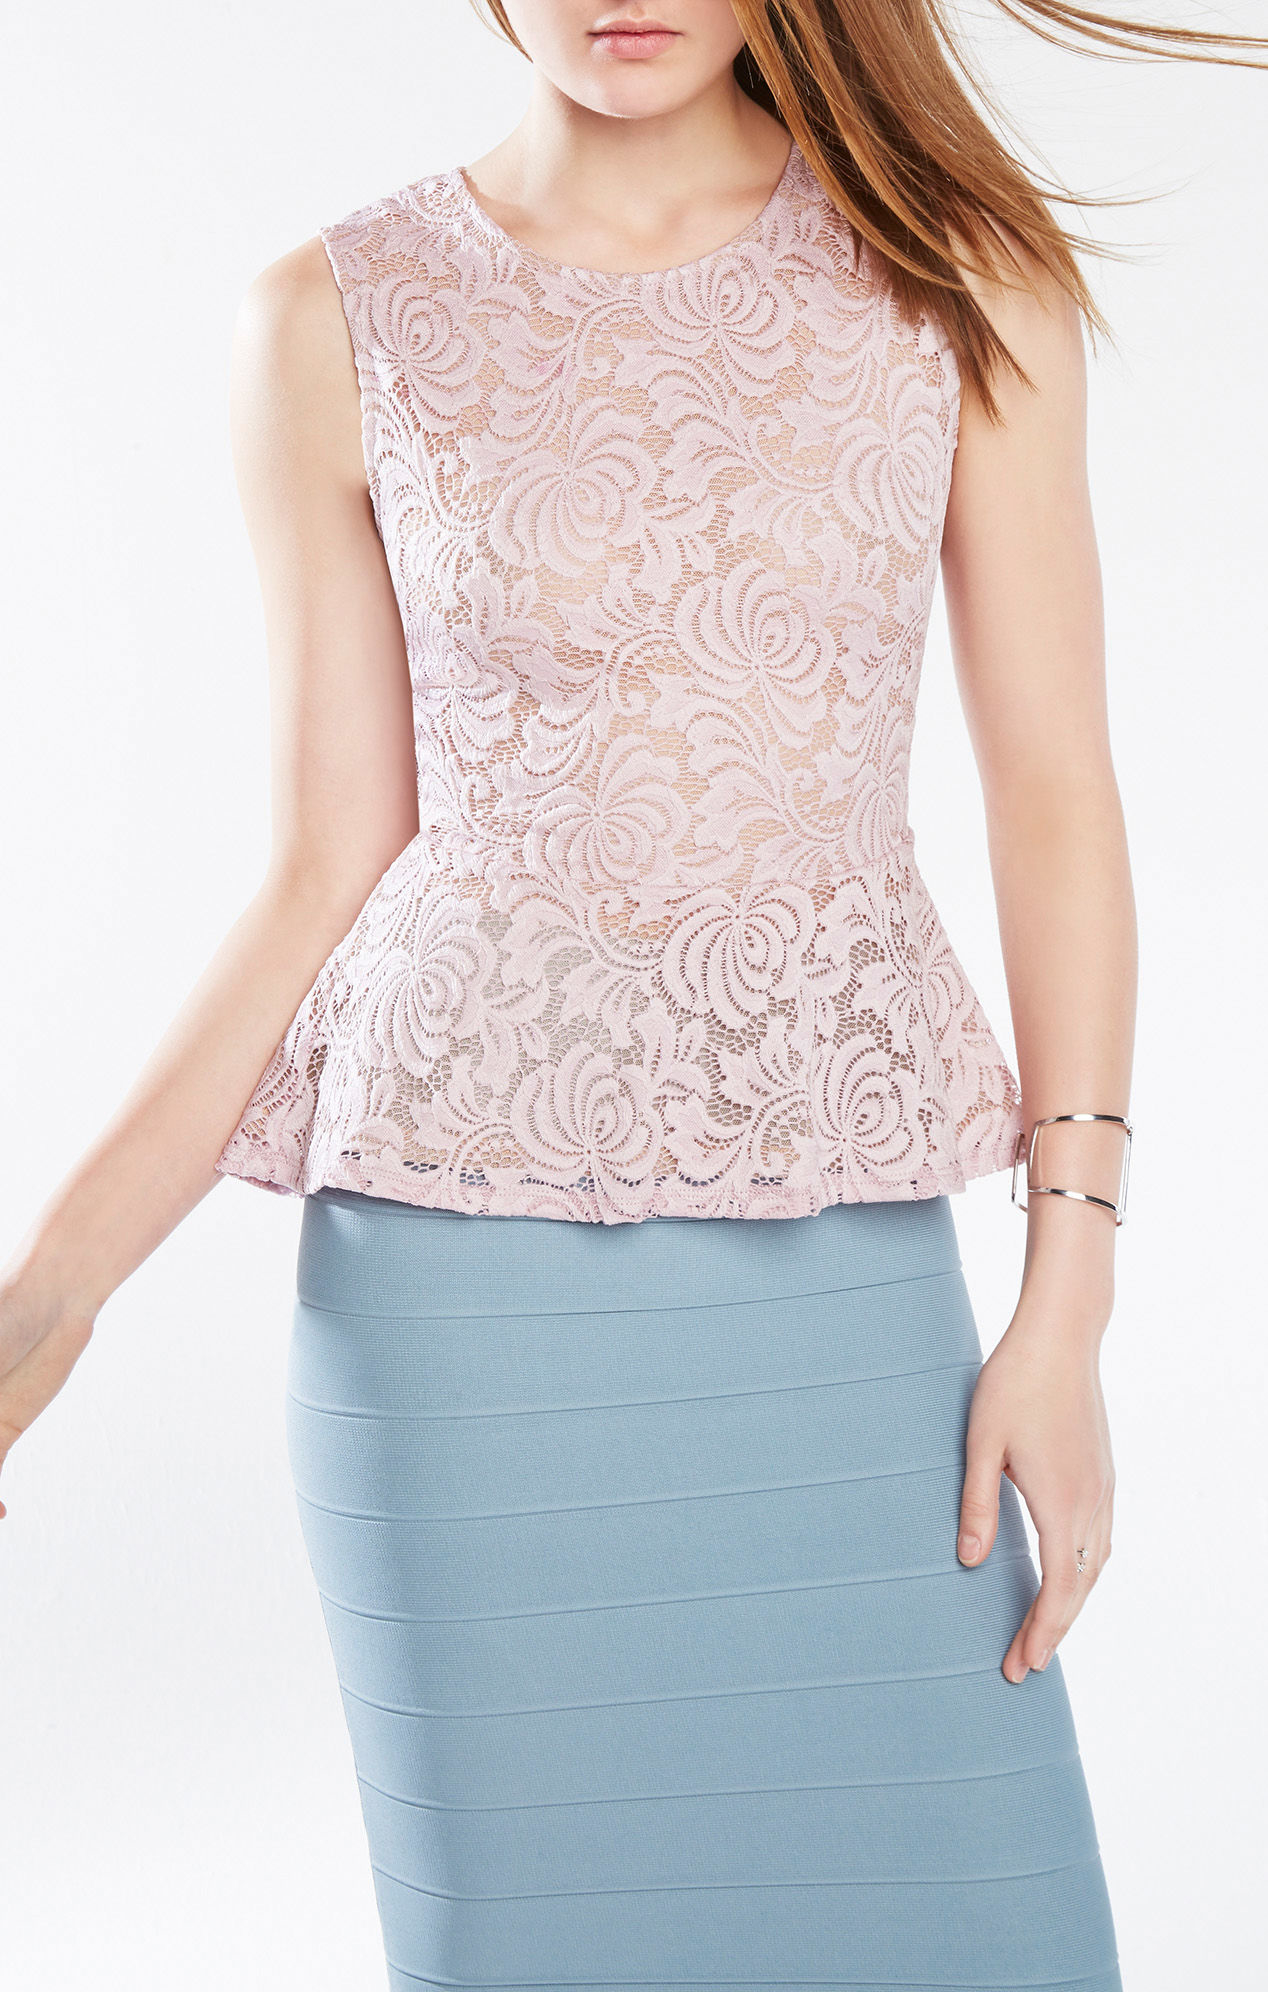 Stretch Floral Lace 3/4 Sleeve Peplum Top Play Video Automatically Previously recorded videos may contain expired pricing, exclusivity claims, or promotional offers/5.